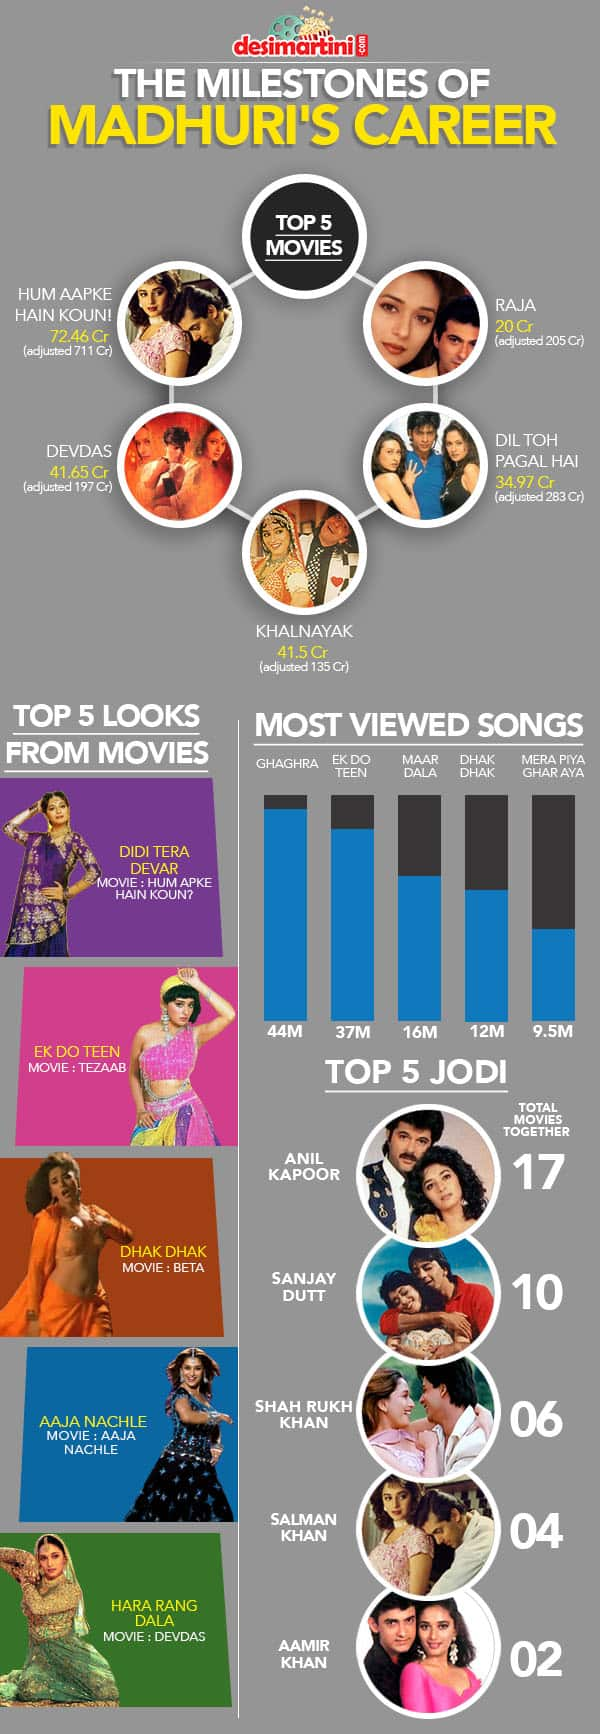 The Milestones Of Madhuri Dixit's Career That Make Her An Evergreen Bollywood Star